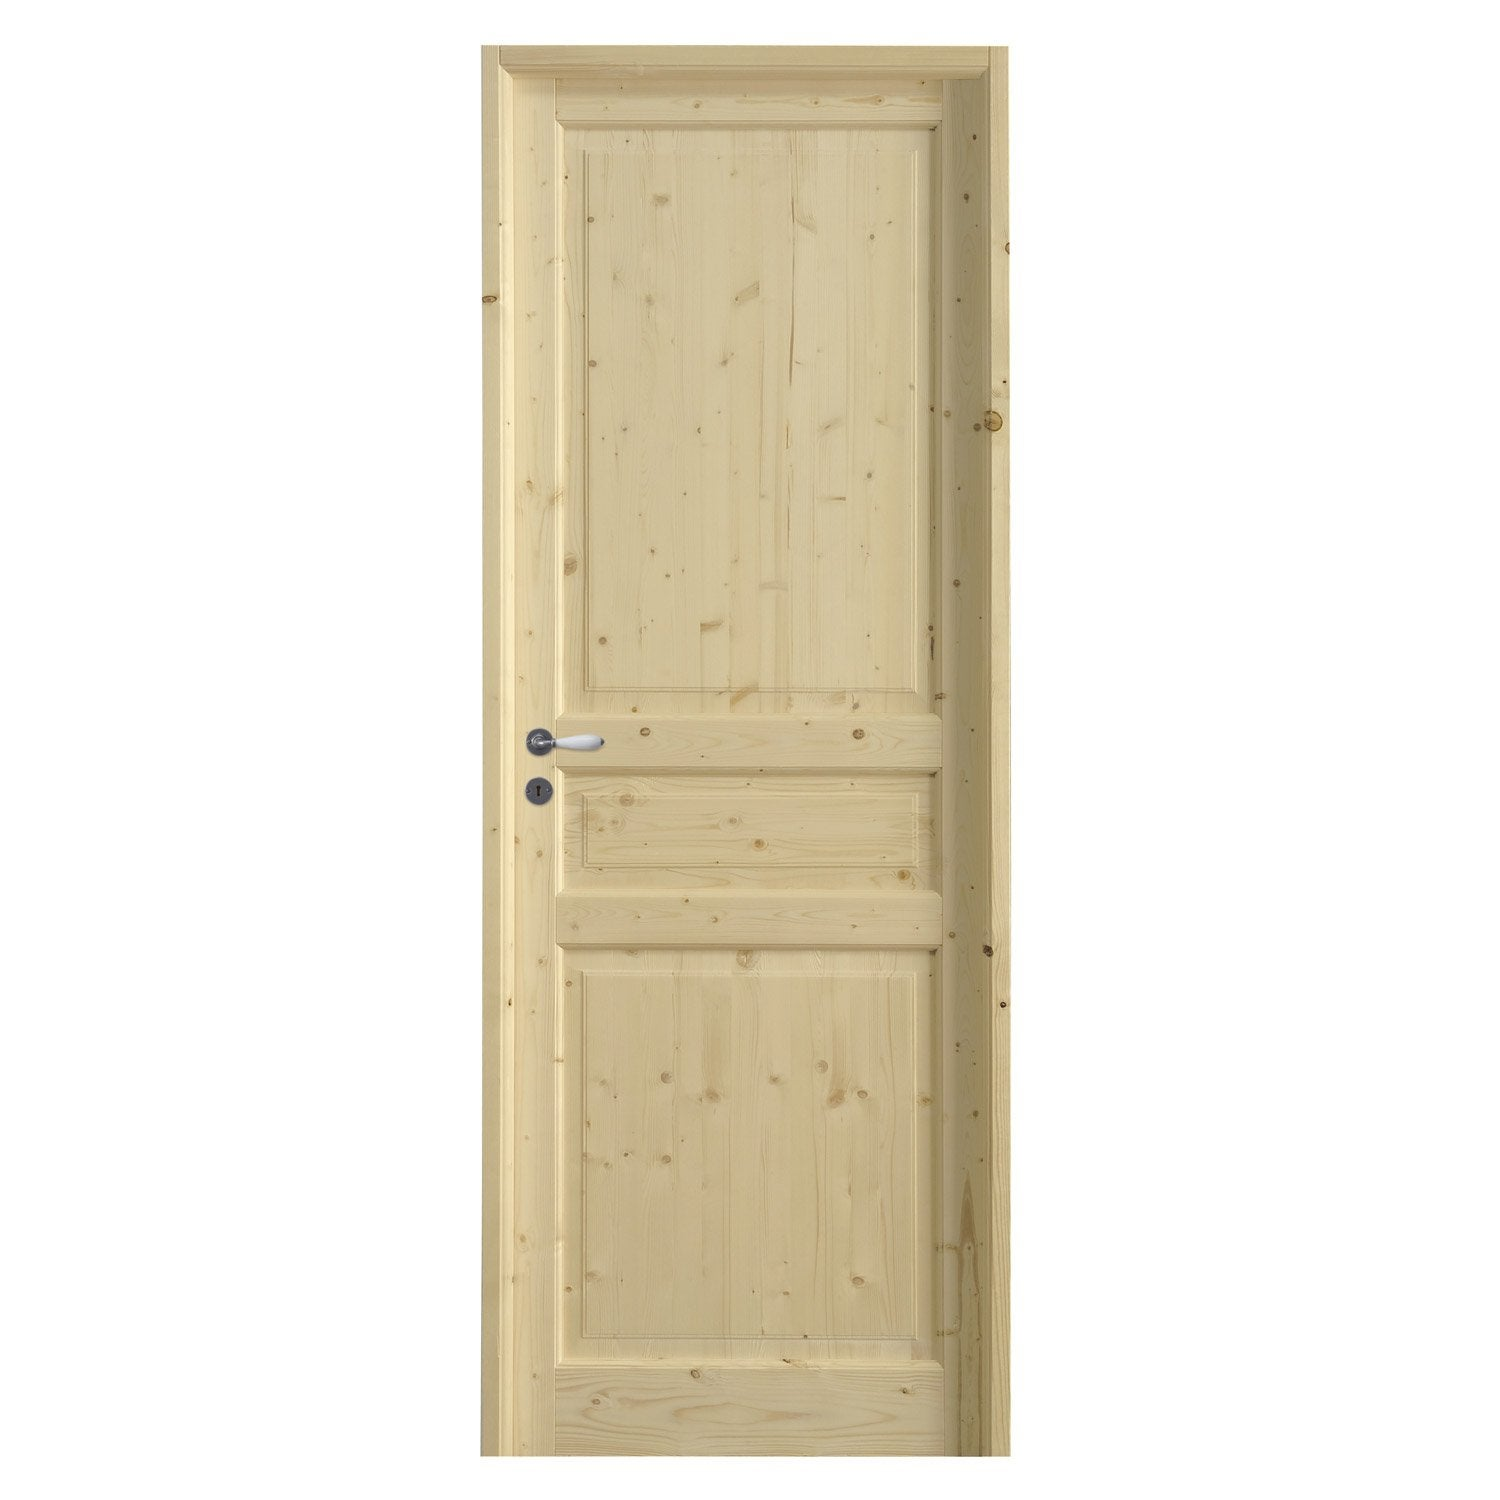 Bloc porte sapin charme x cm leroy merlin for Porte interieur point p